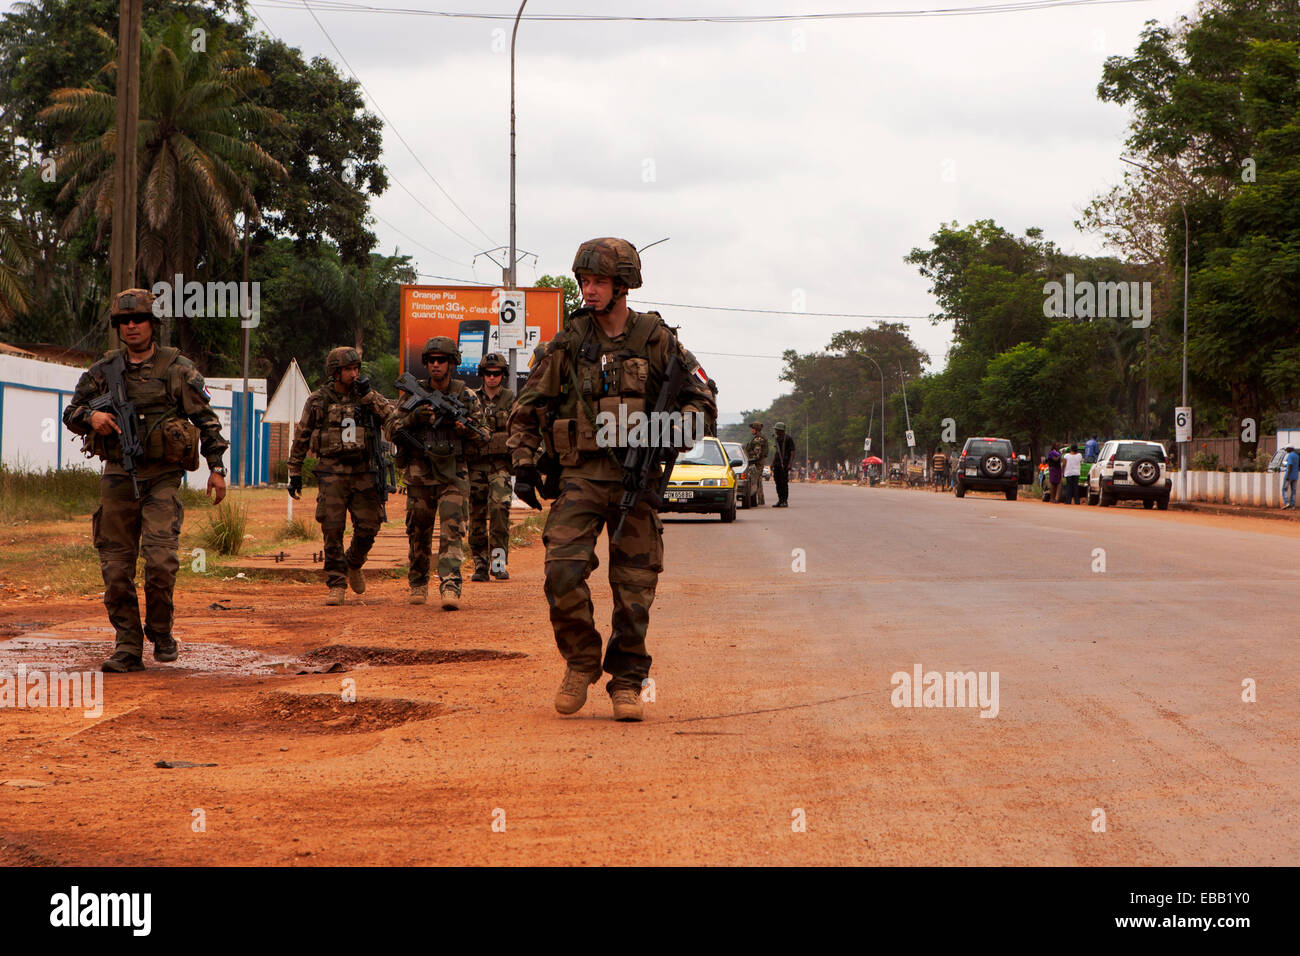 French troops on patrol in Bangui, Central African Republic - Stock Image